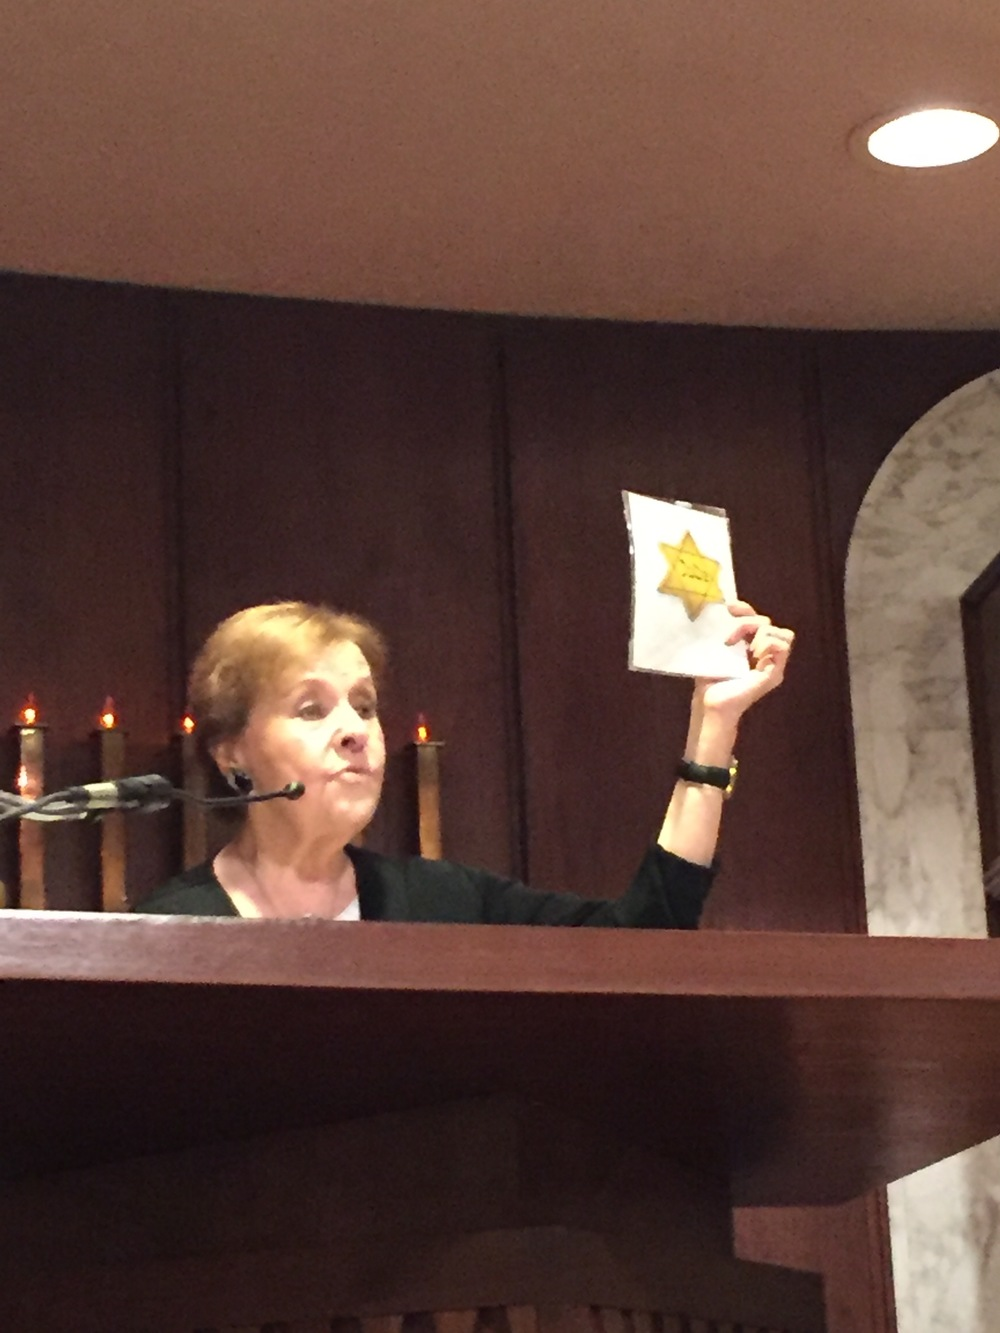 Lazan shows the audience the yellow star the Nazis forced her to wear.